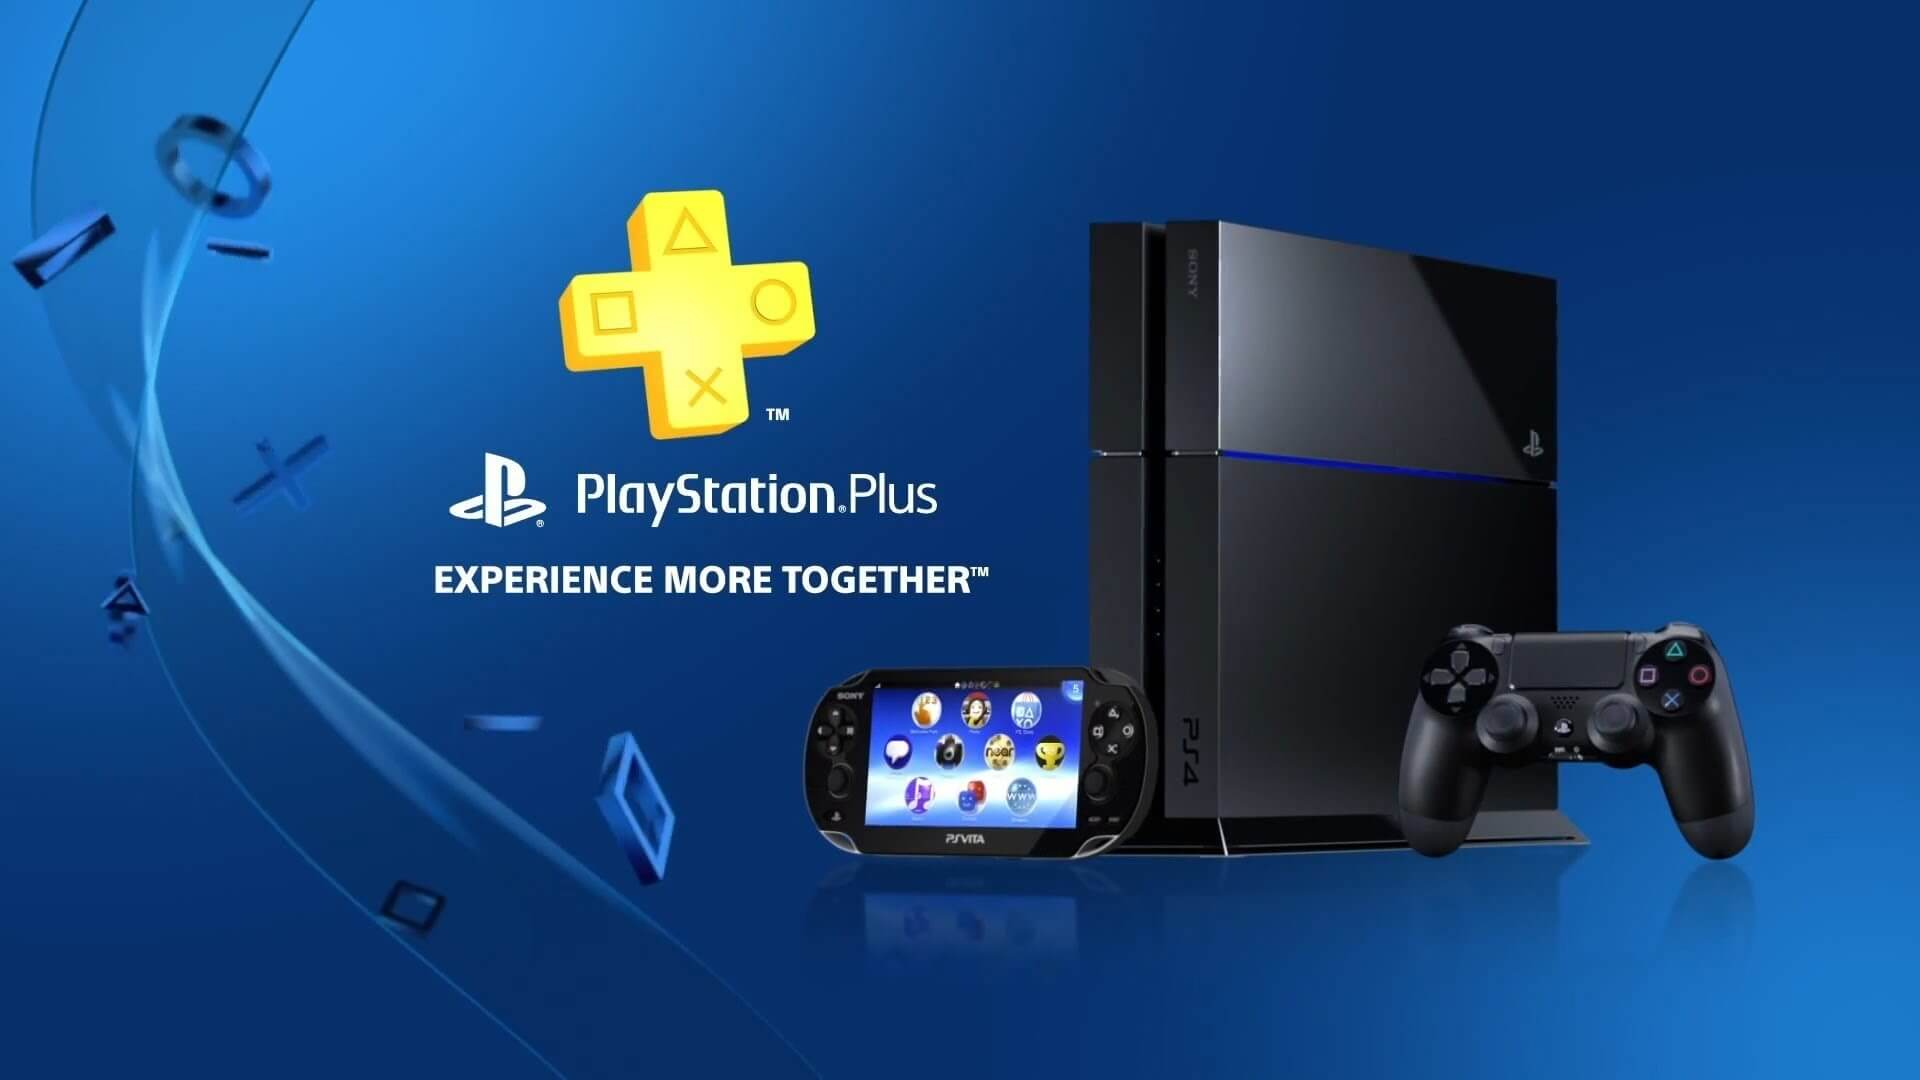 Your playstation plus subscription comes with free games each month